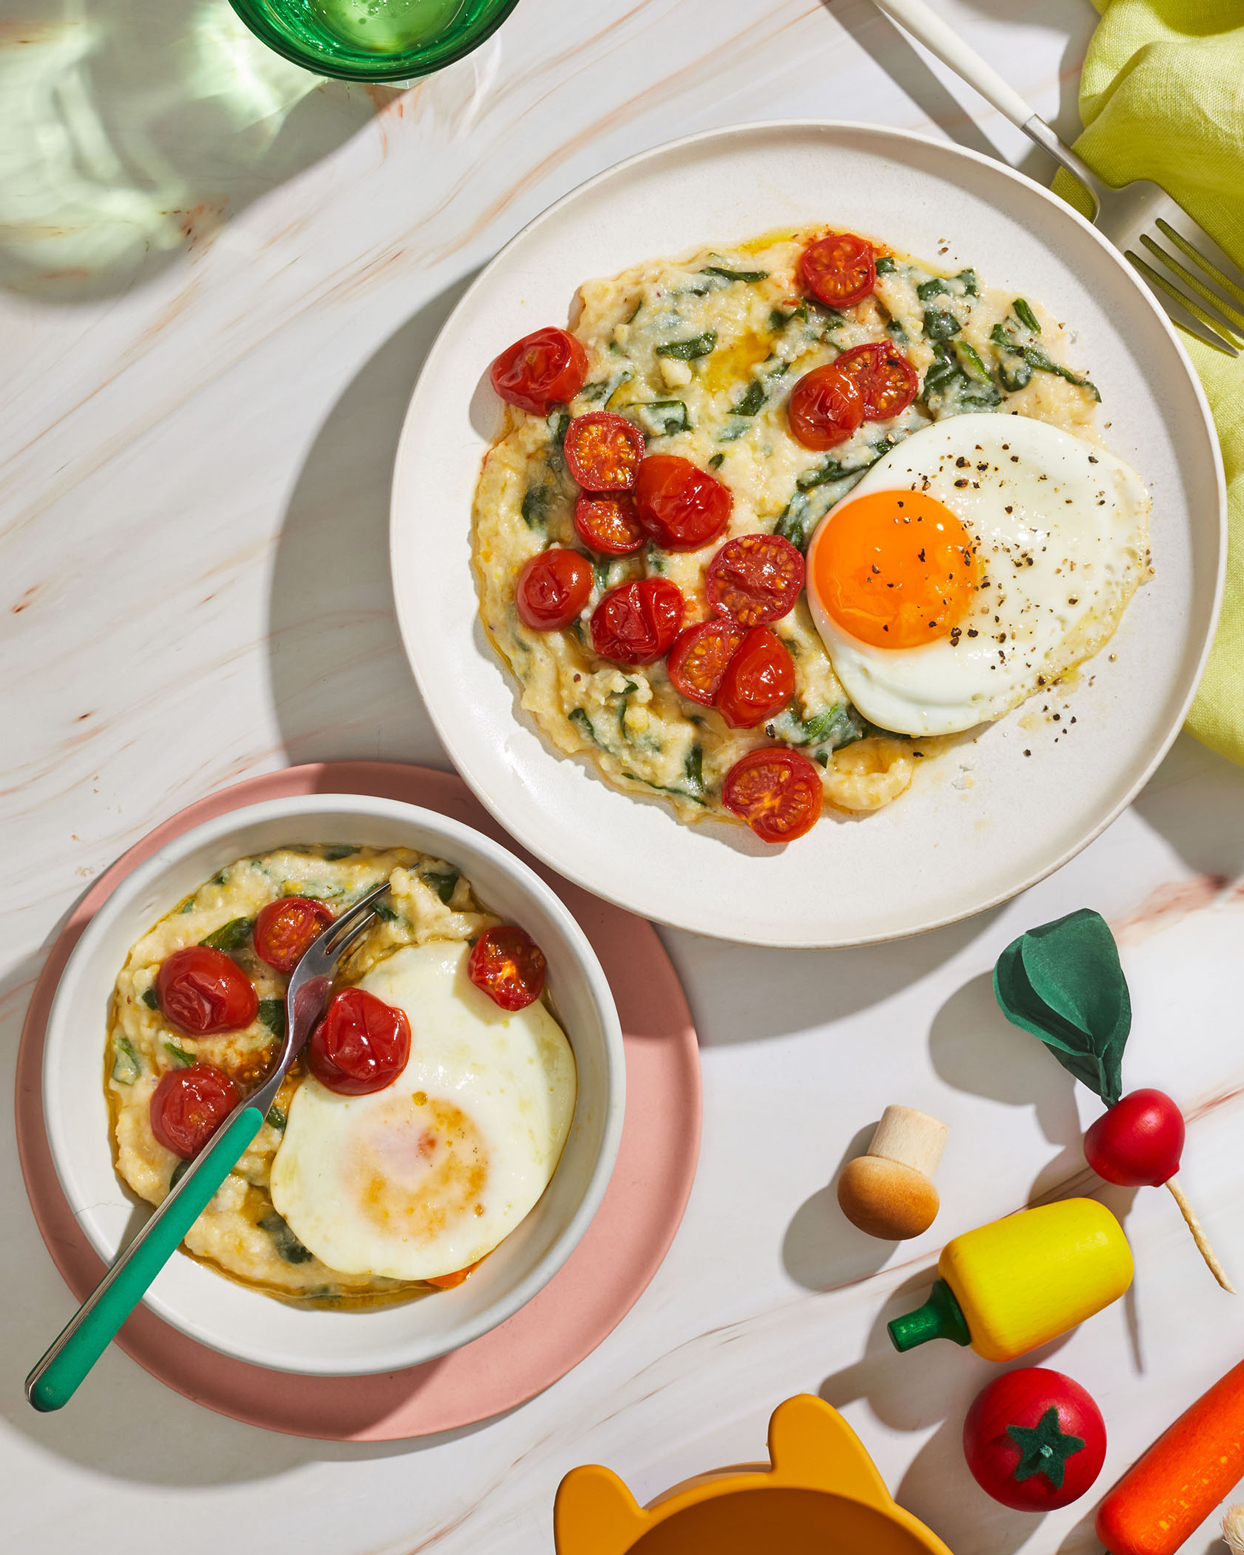 Spinach Polenta With Eggs